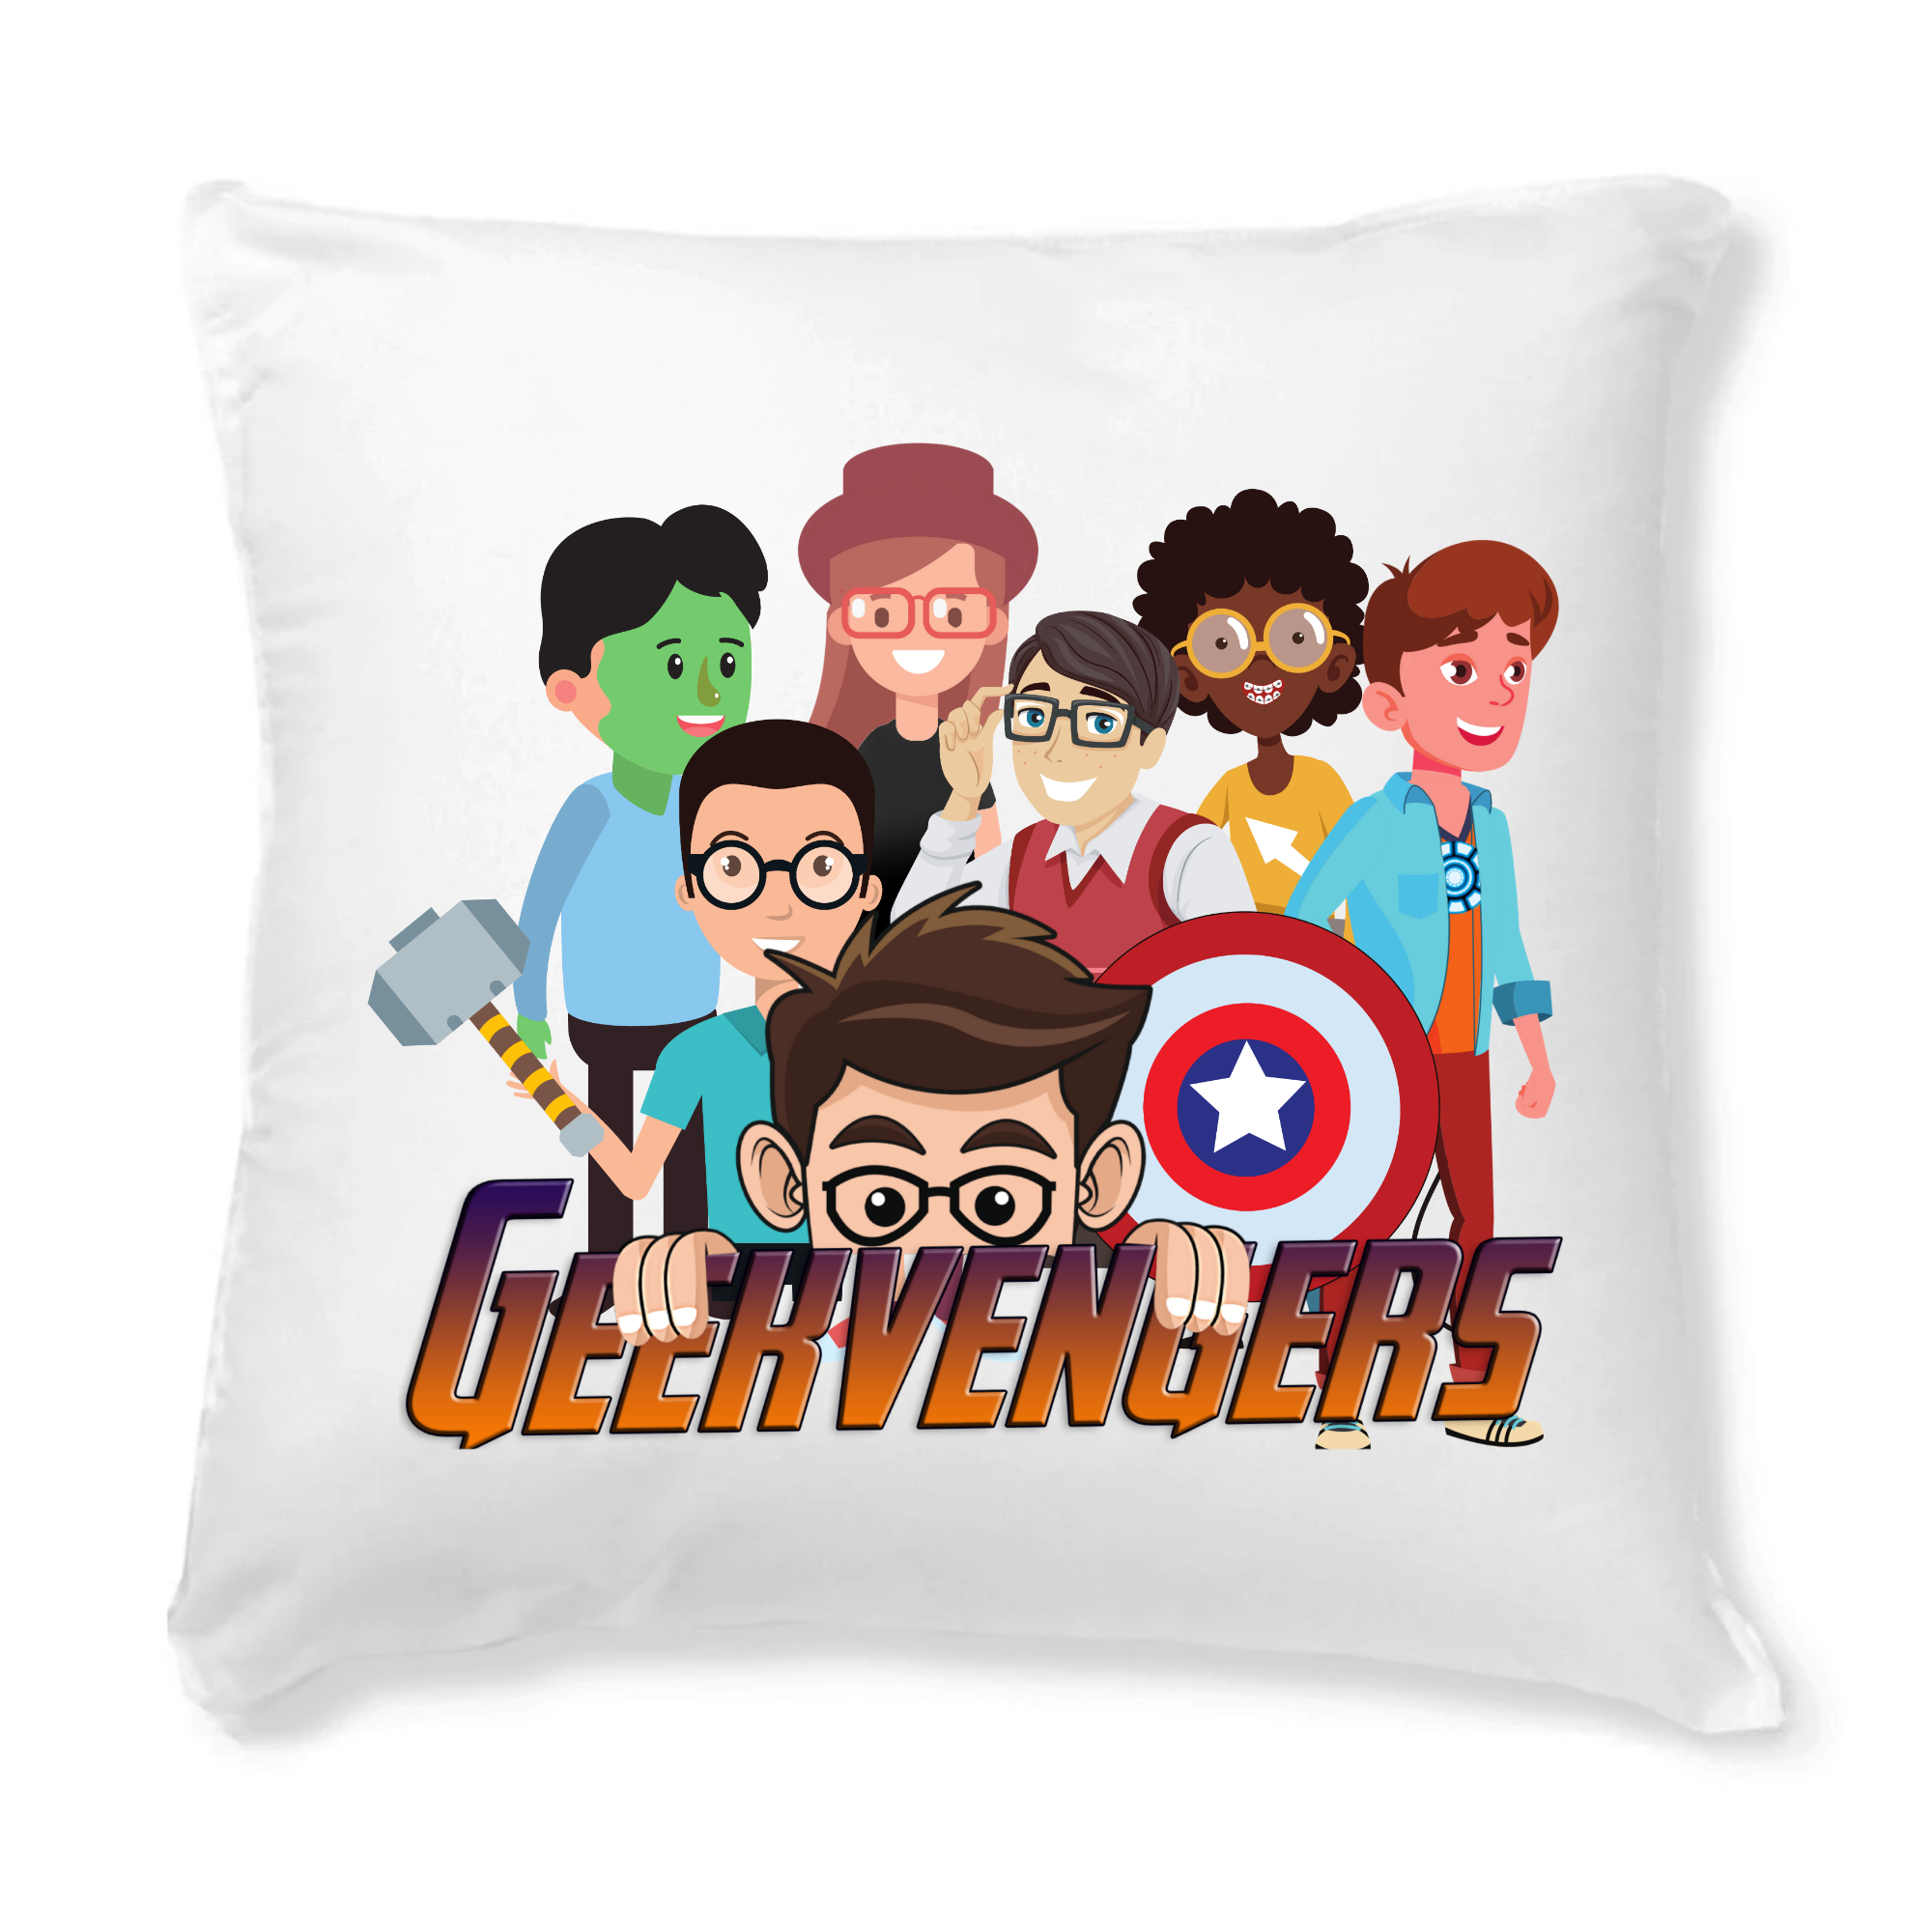 Coussin + Housse - Geekvengers - |TPO-COU-HOU-40| €39 |Film, Geek |vodax